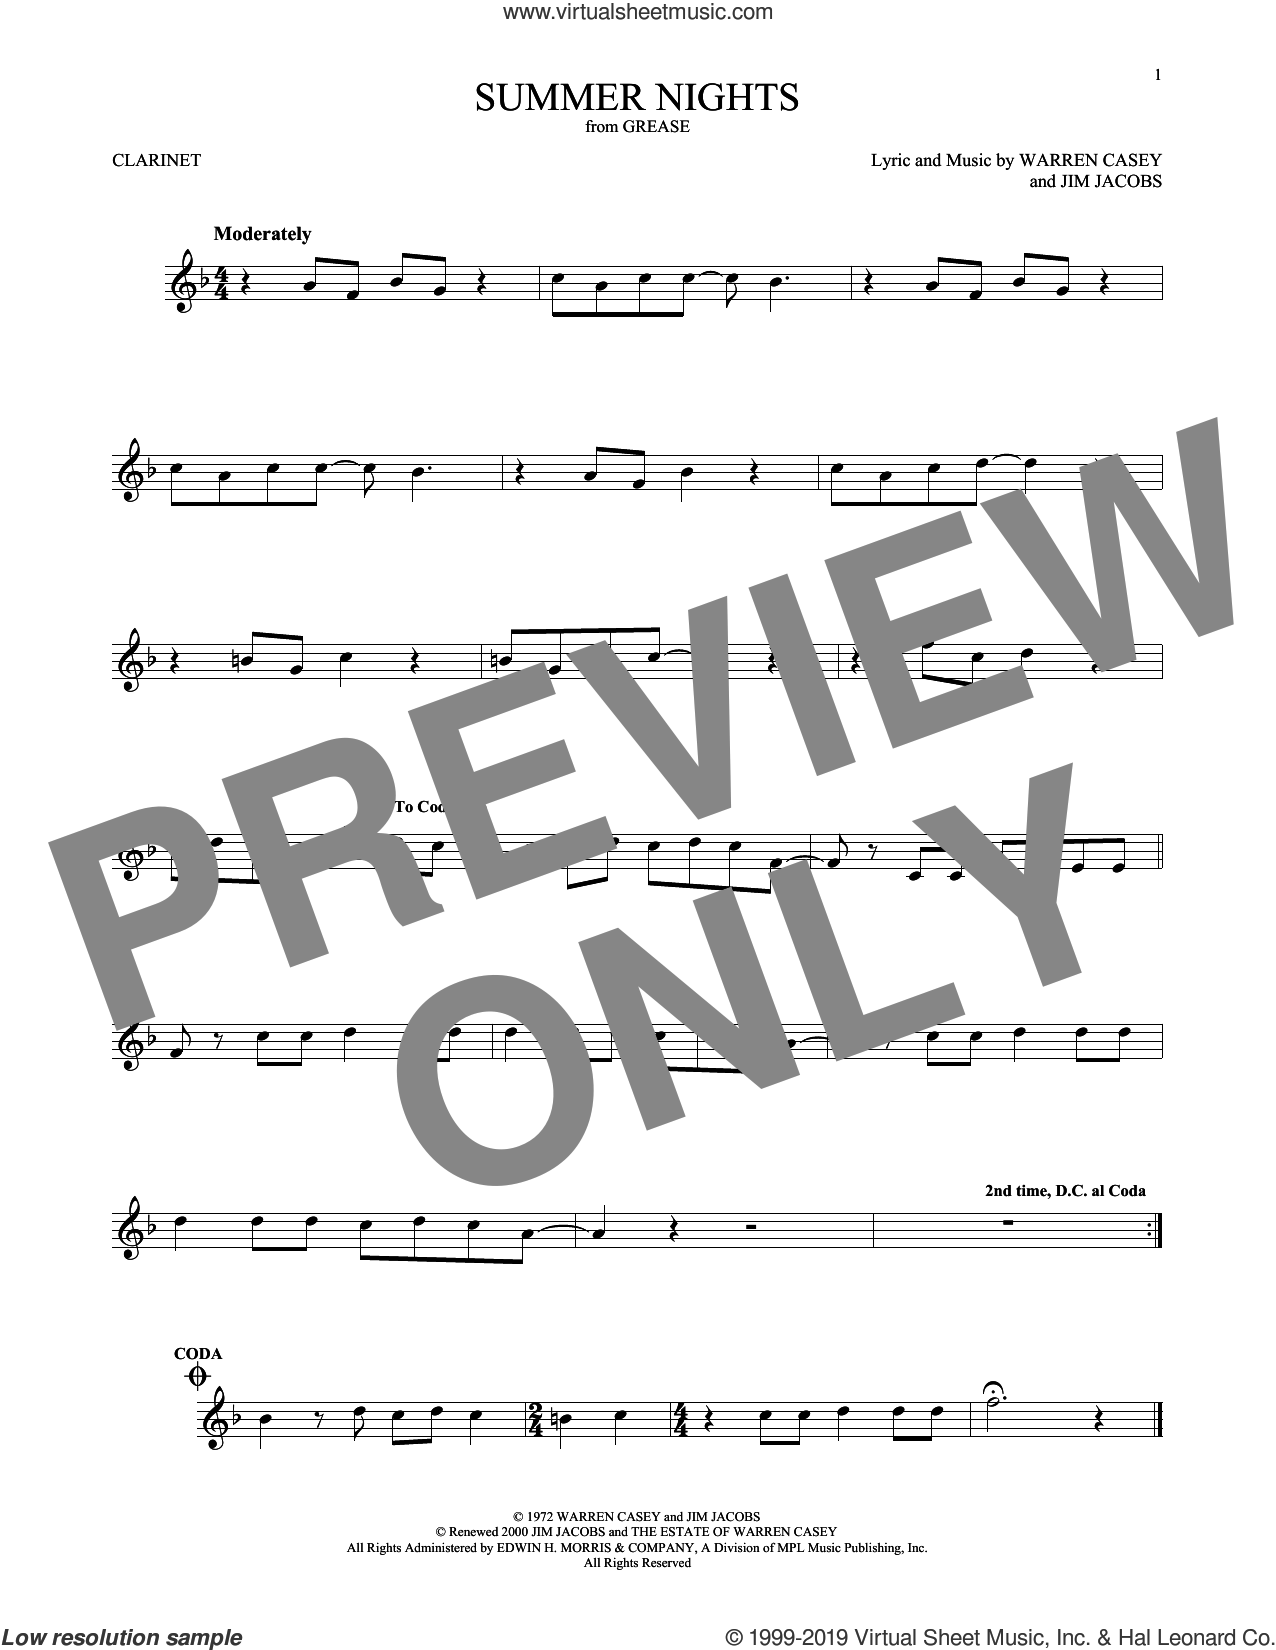 Summer Nights sheet music for clarinet solo by Jim Jacobs and Warren Casey, intermediate skill level